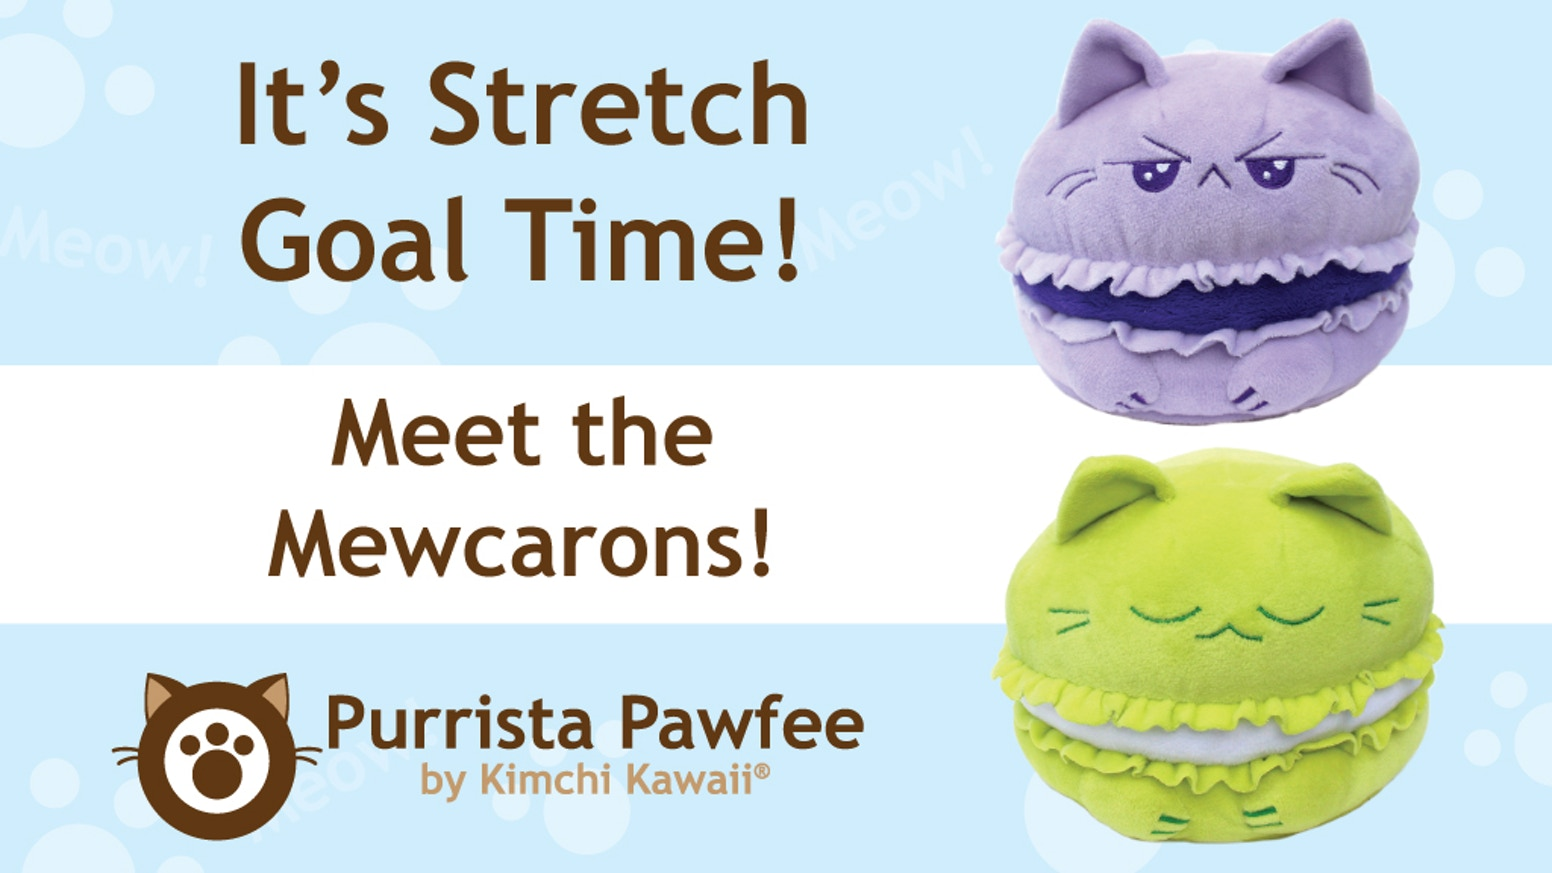 We're back with more of the Purrista Pawfee coffee shop plush cats! Meet Torta-shell and the lavender and green Mewcarons!